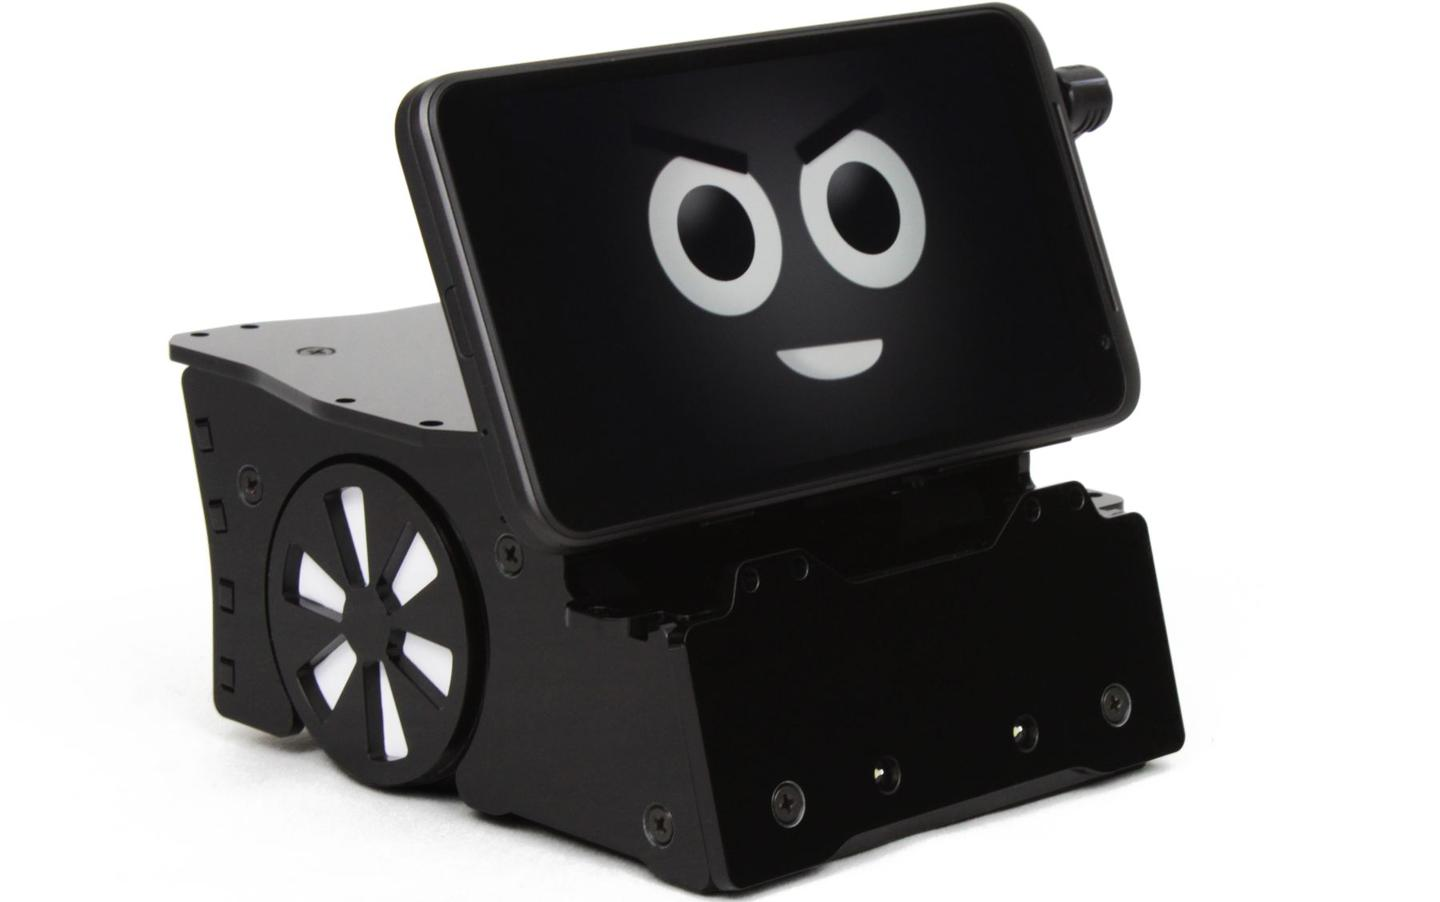 Overdrive Robotics' smartphone-powered SmartBot